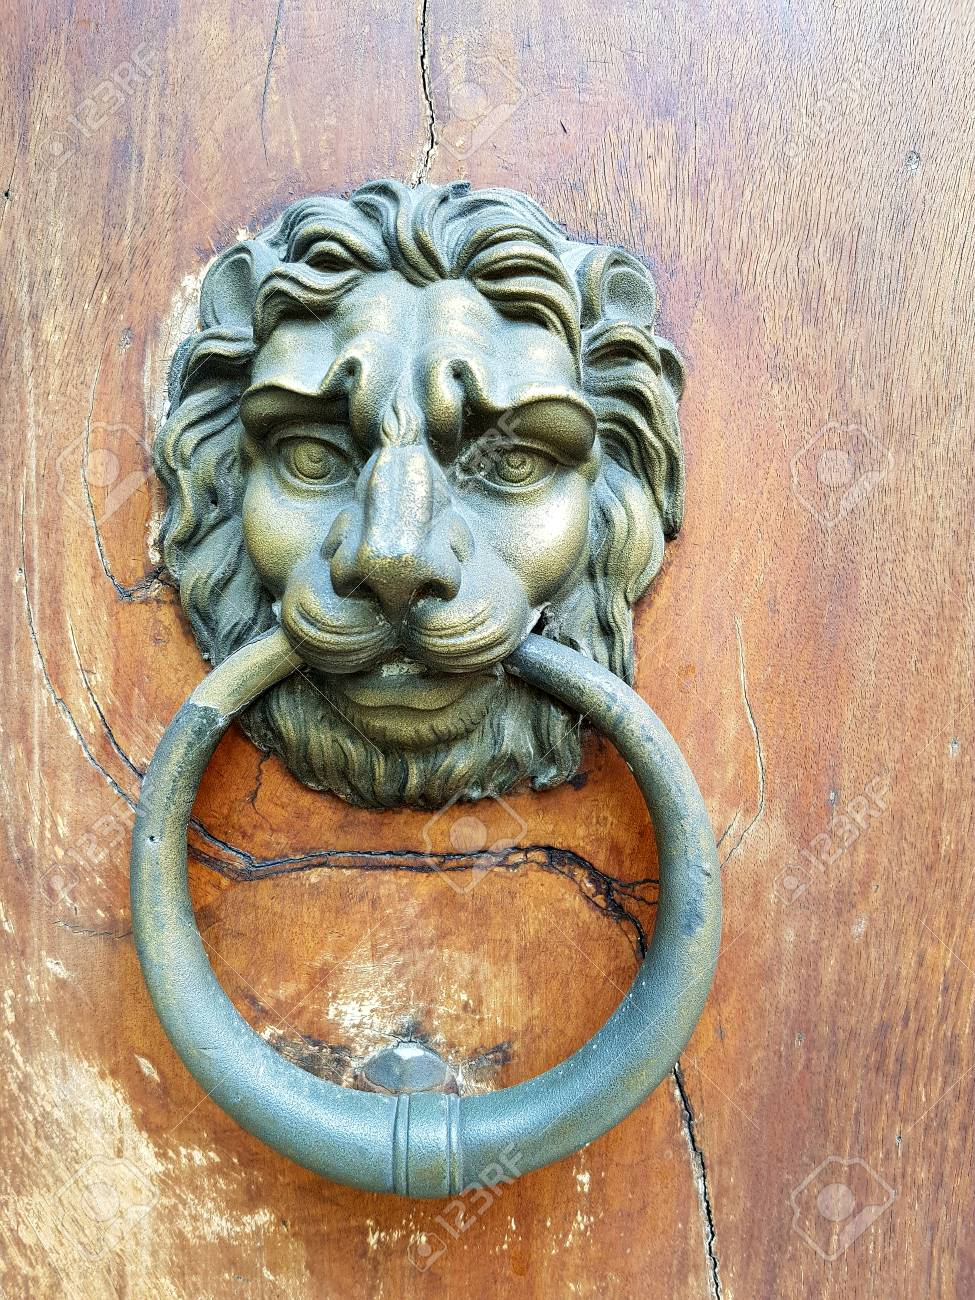 hight resolution of antique brass door knocker in the shape of a lion s head with large ring in